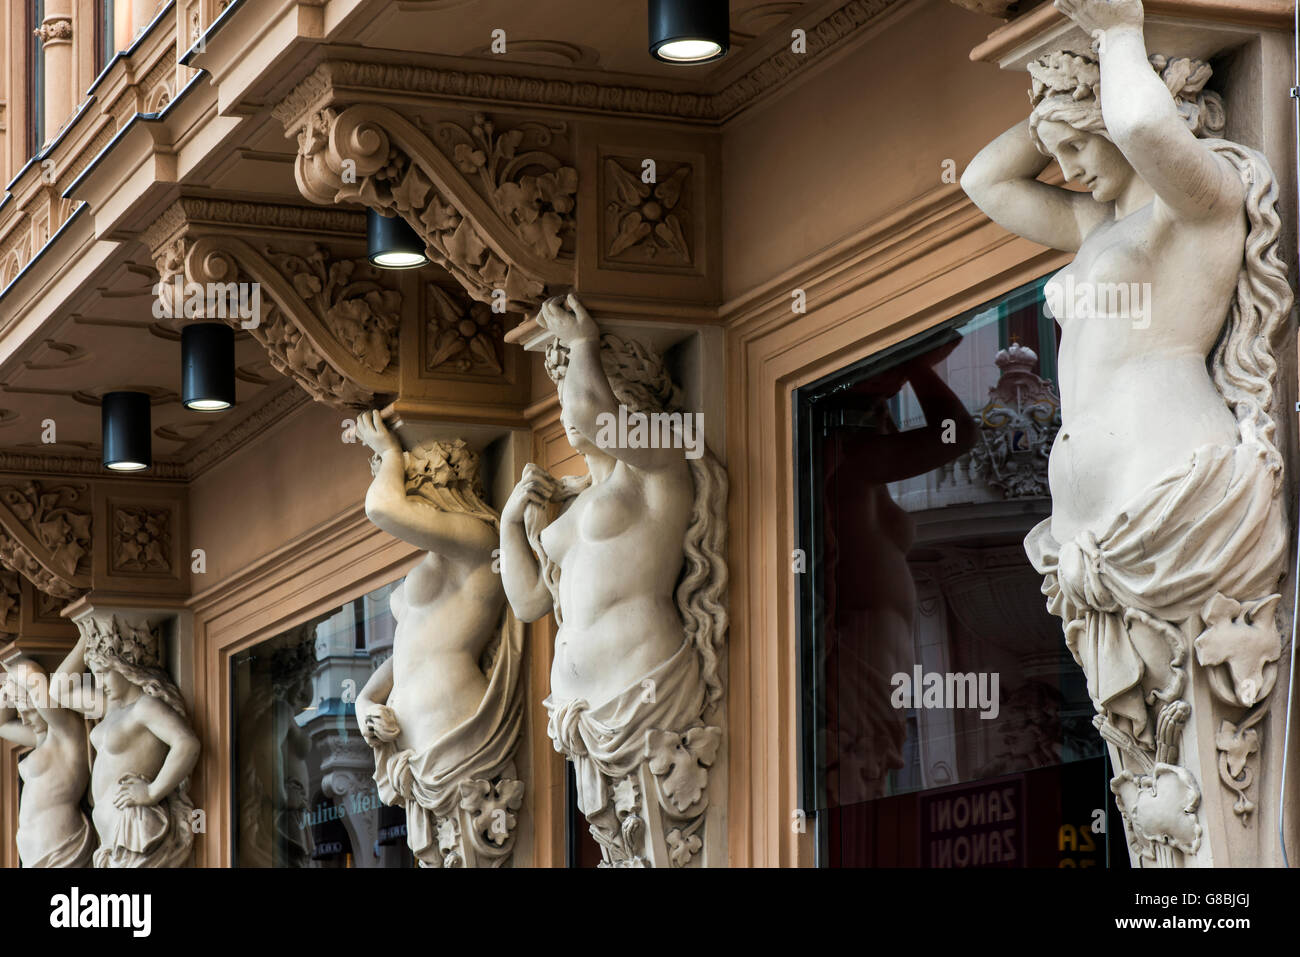 Caryatid sculpted female figure statues on the facade of a building in Graben street, Vienna, Austria - Stock Image